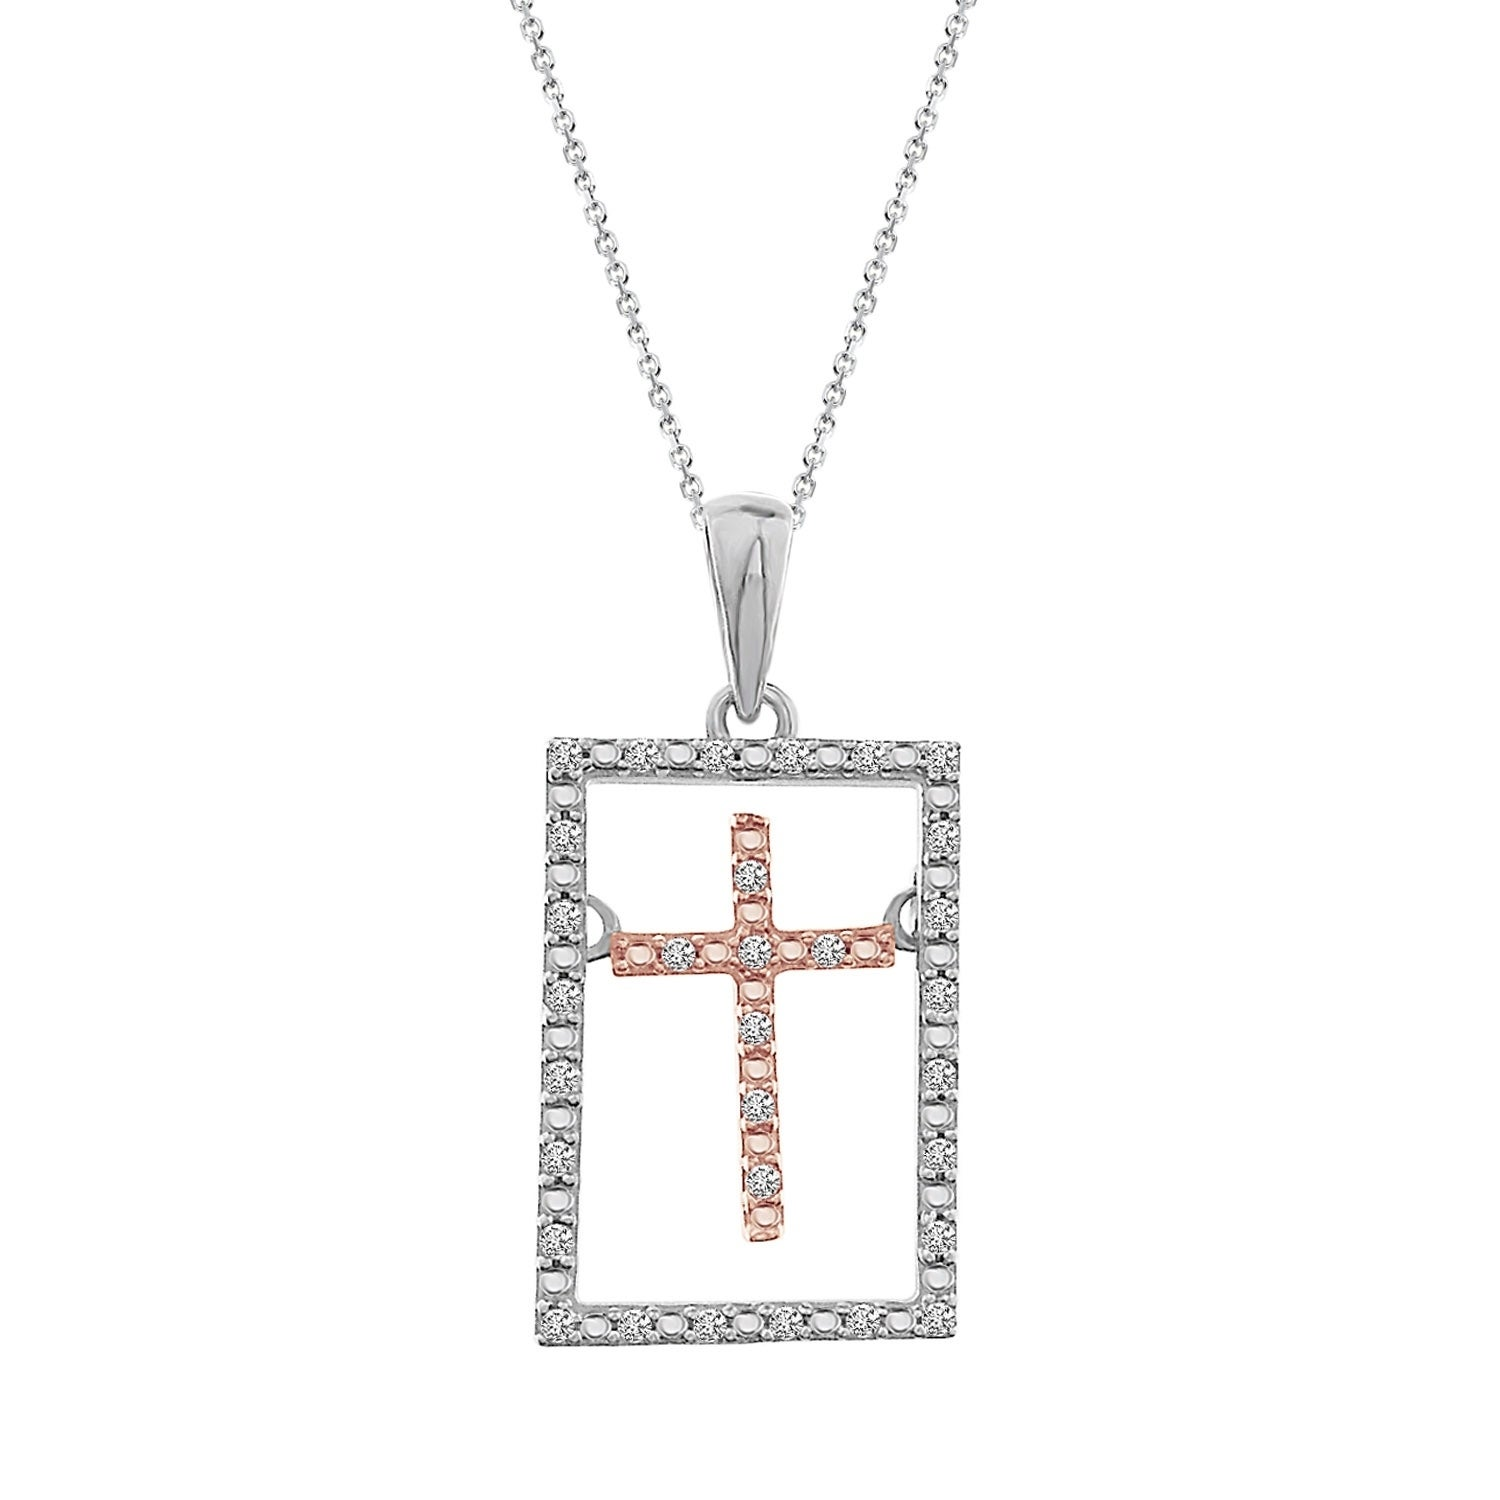 ed48d4fd528bb Details about 1/10 cttw Round White Diamond Ladies Cross Pendant w/18